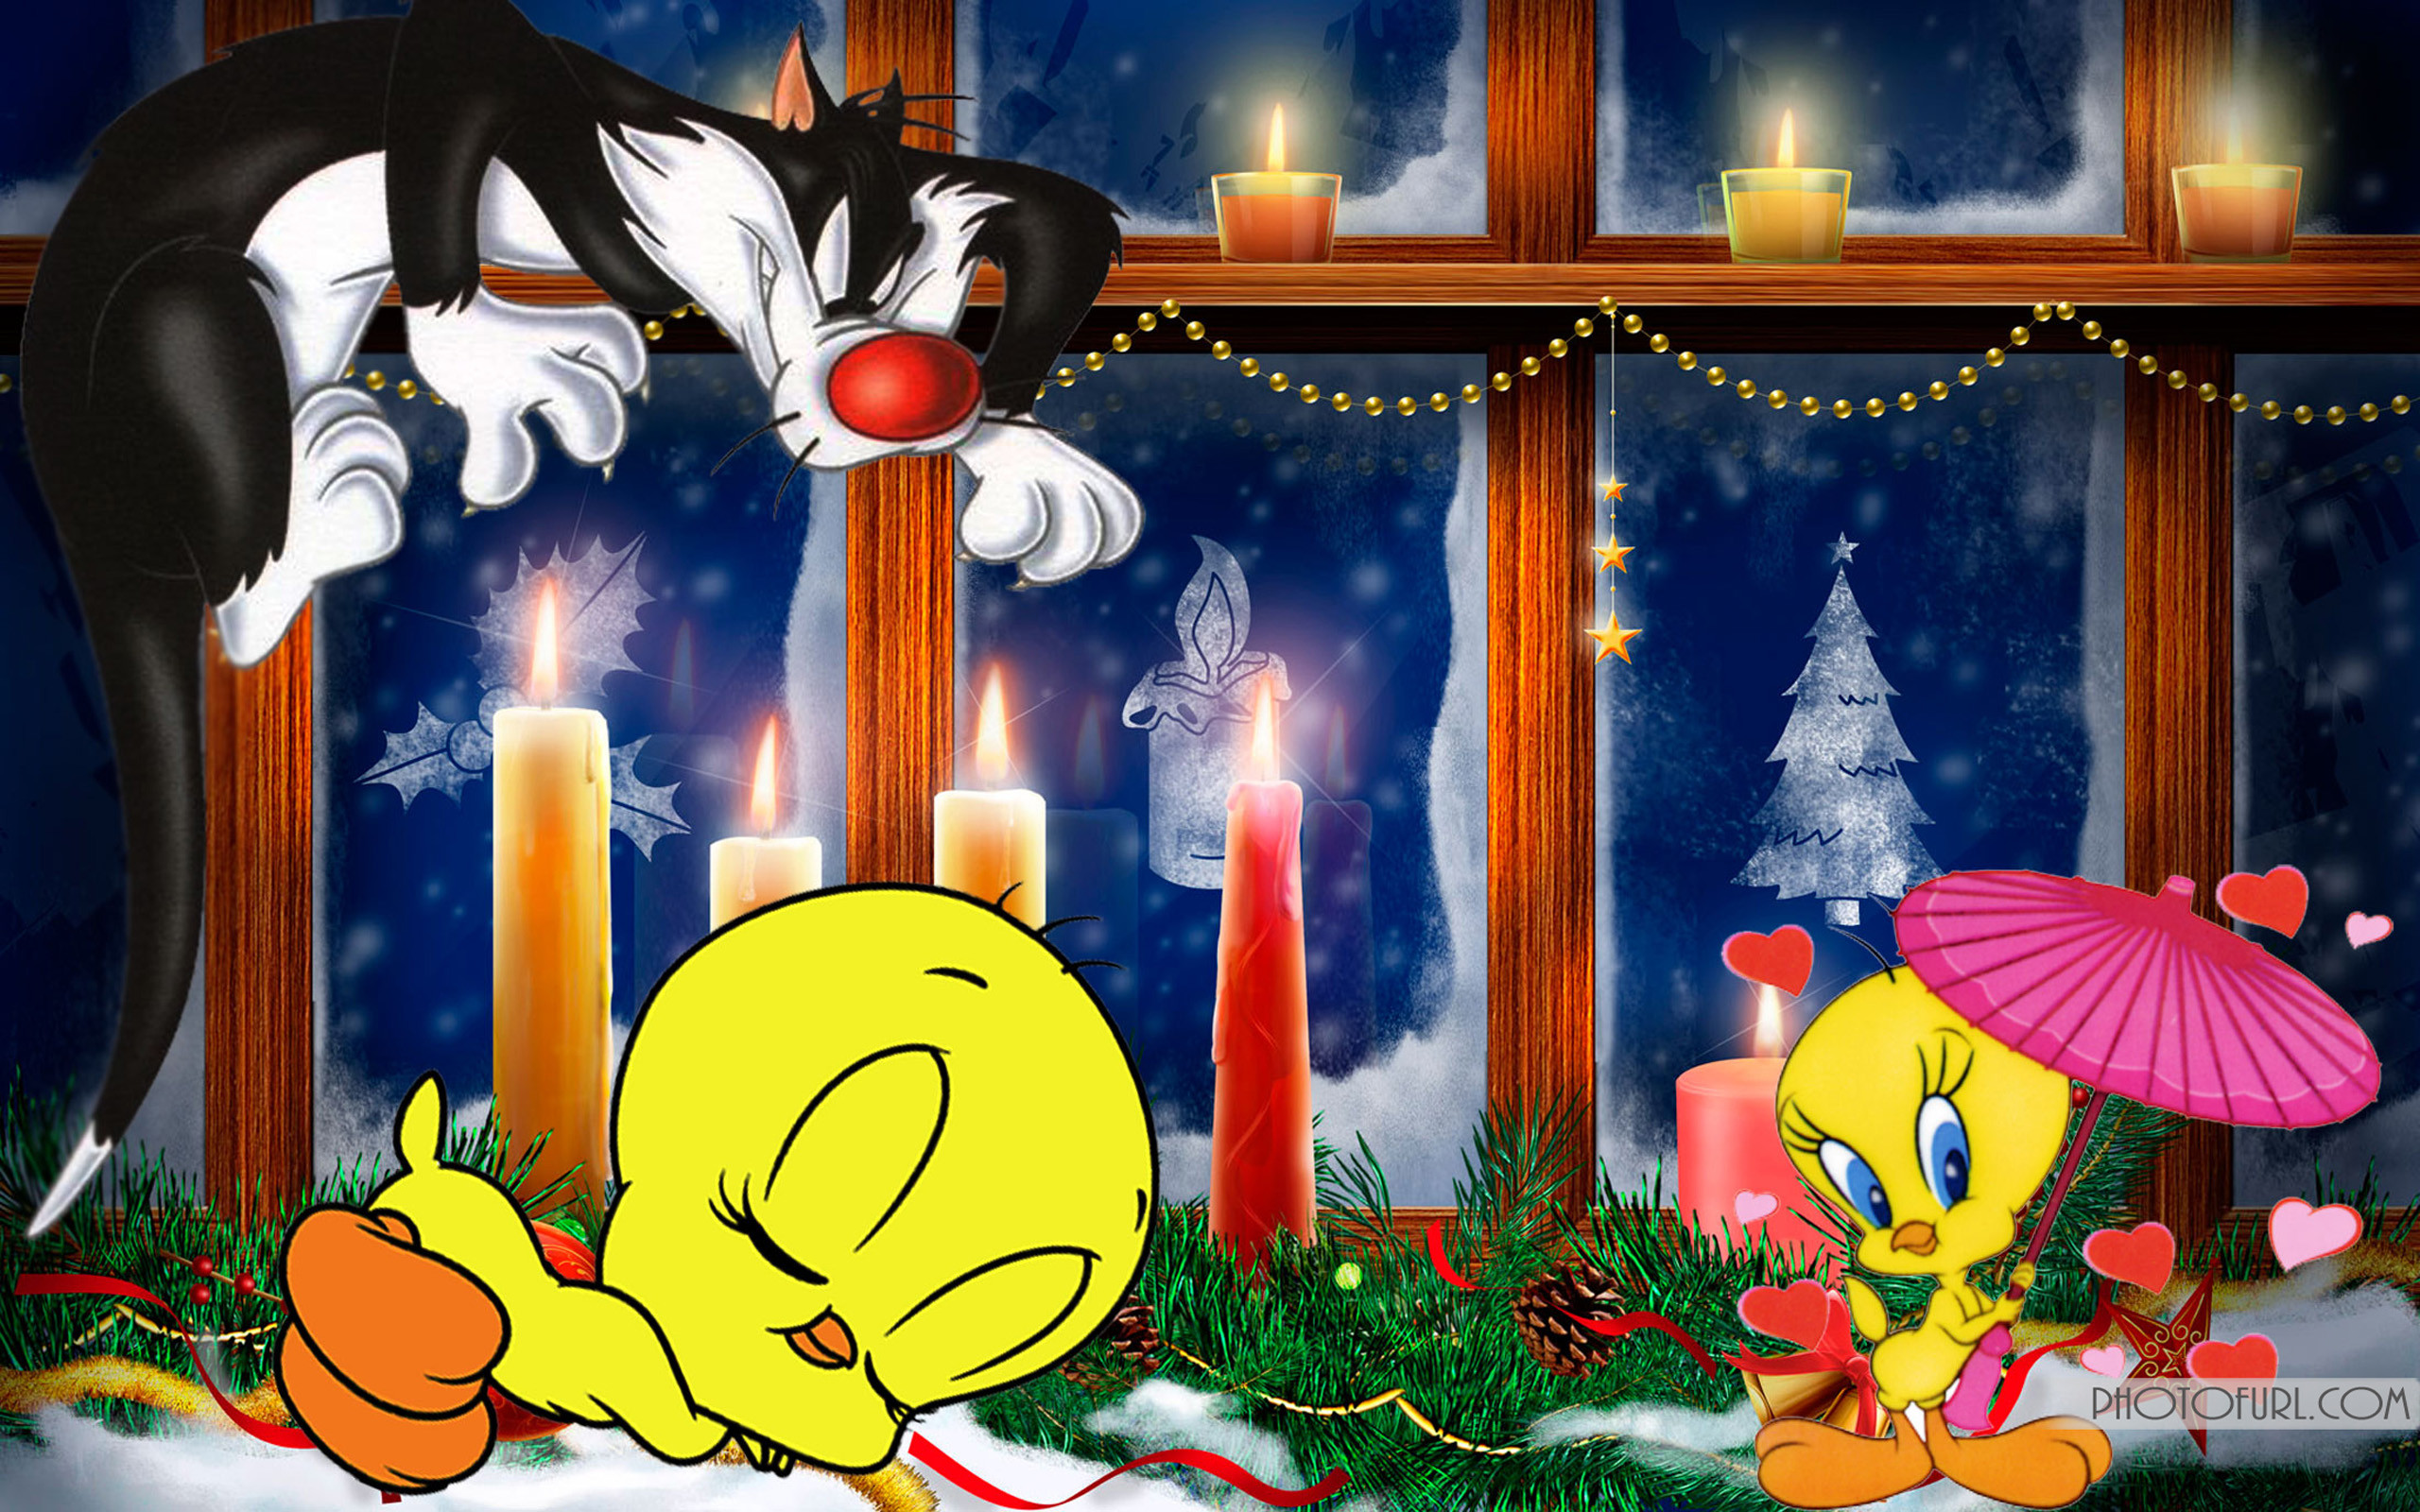 Cute Cat Wallpapers High Resolution Looney Tunes Tweety Bird Wallpaper 61 Images